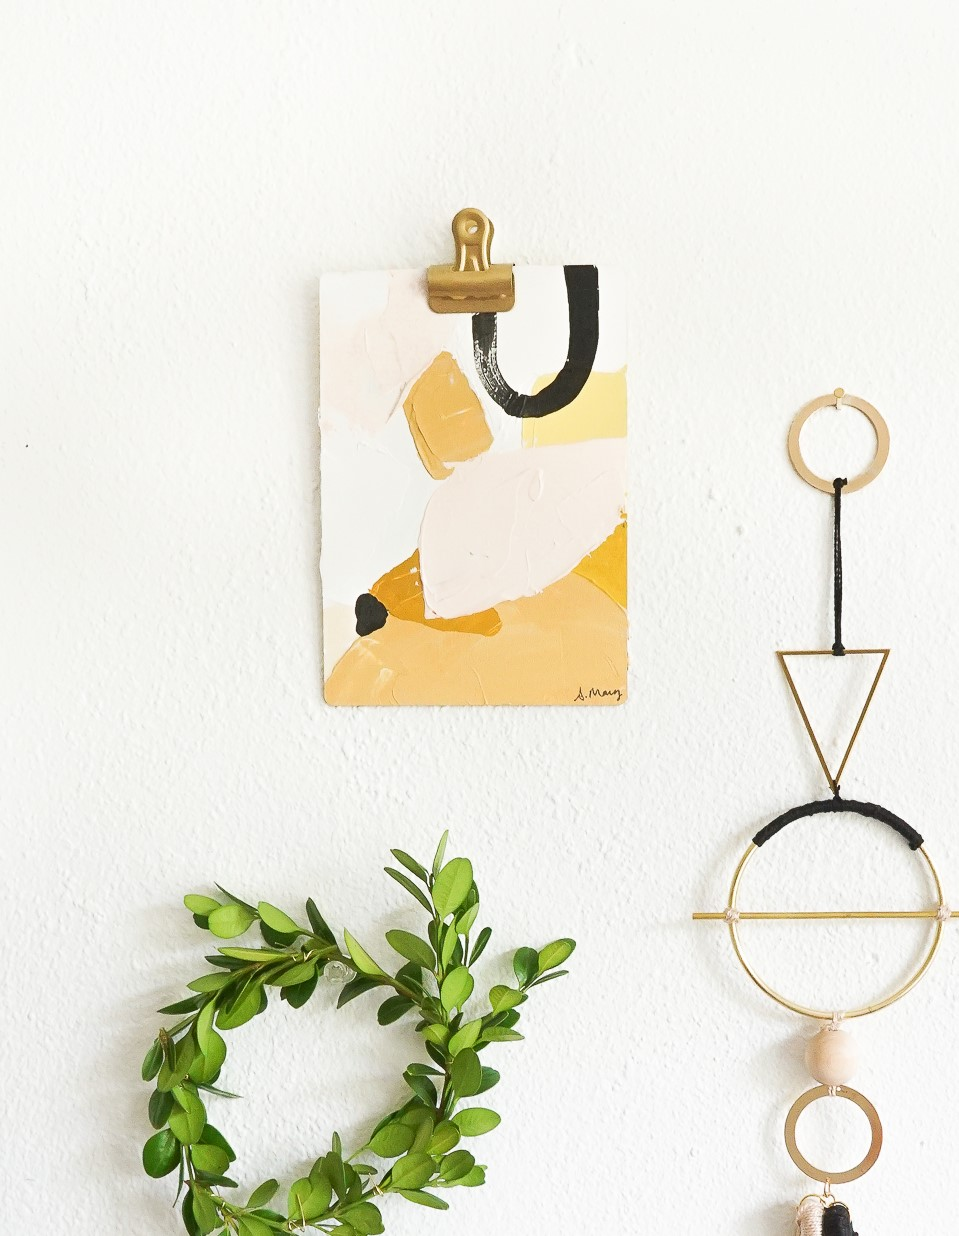 Come peek inside the bright and colorful studio of painter and illustrator, Ashley Mary!